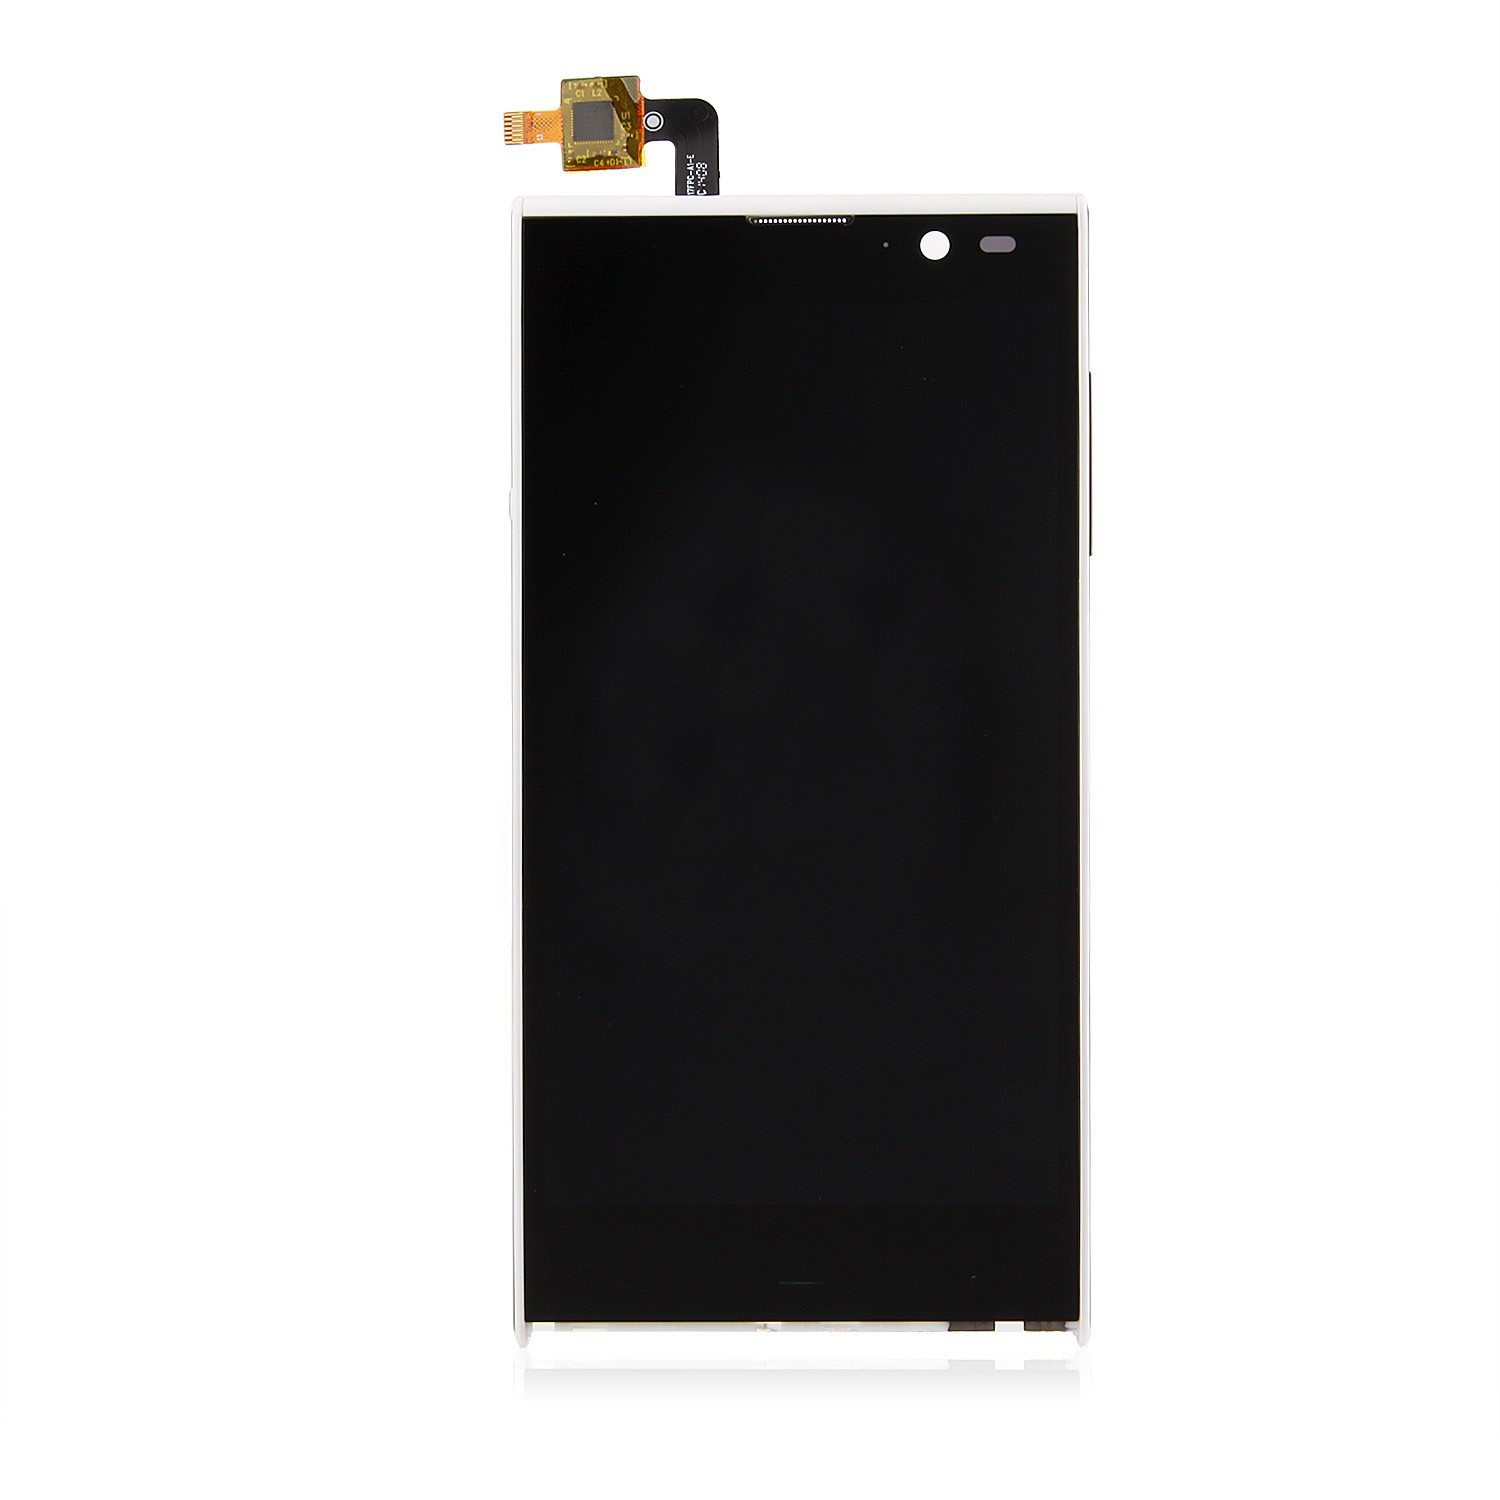 Nexus 7 Tab Display Repair and Replacement In Chennai